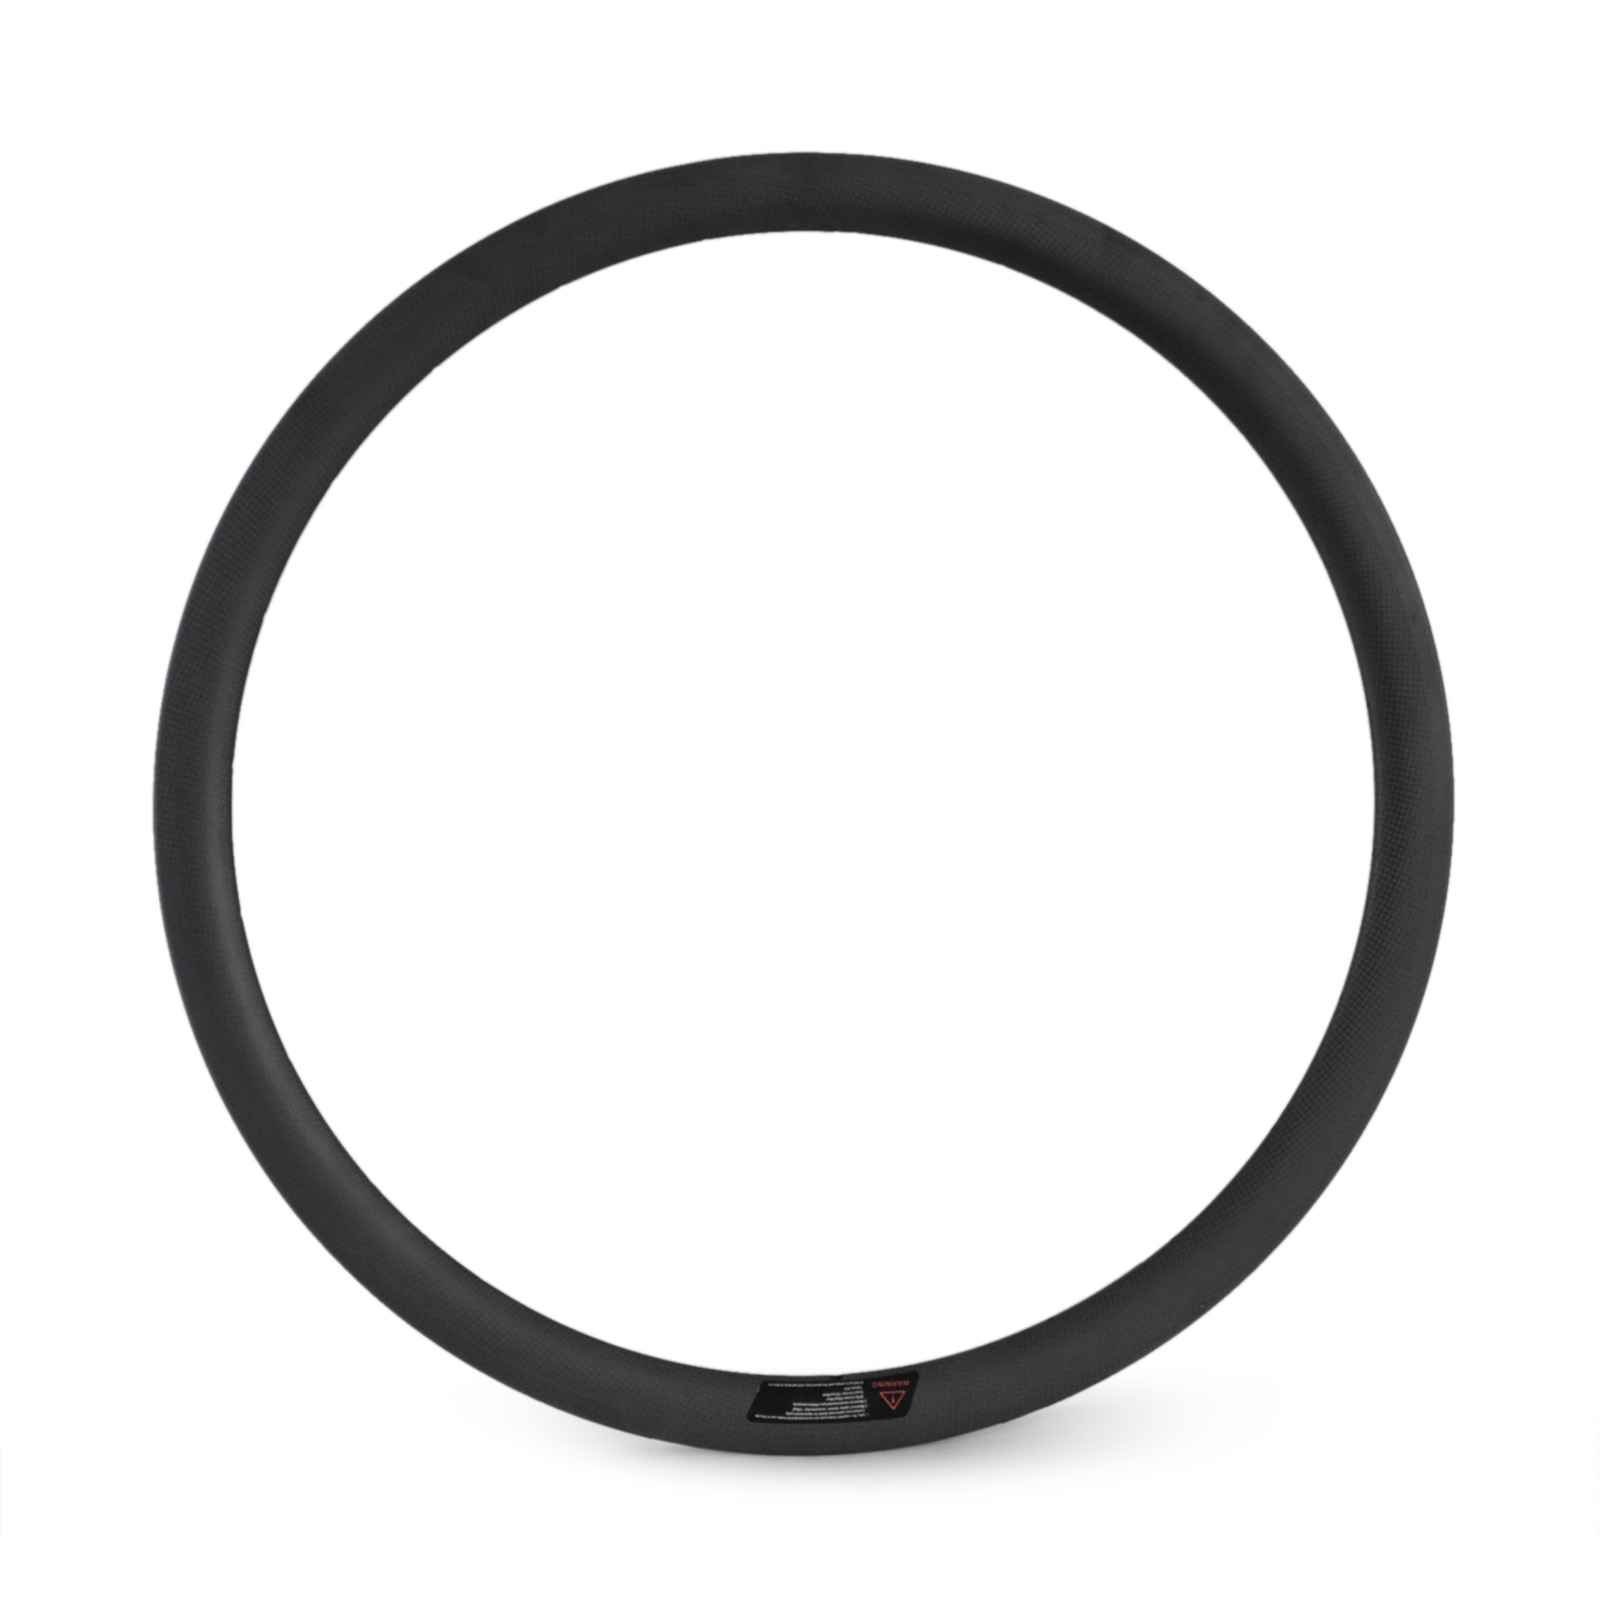 цены  1 Piece Carbon Rim 700C 38mm Clincher 23mm Width 16/18/32/36 Holes Single Rim for Road Bicycle